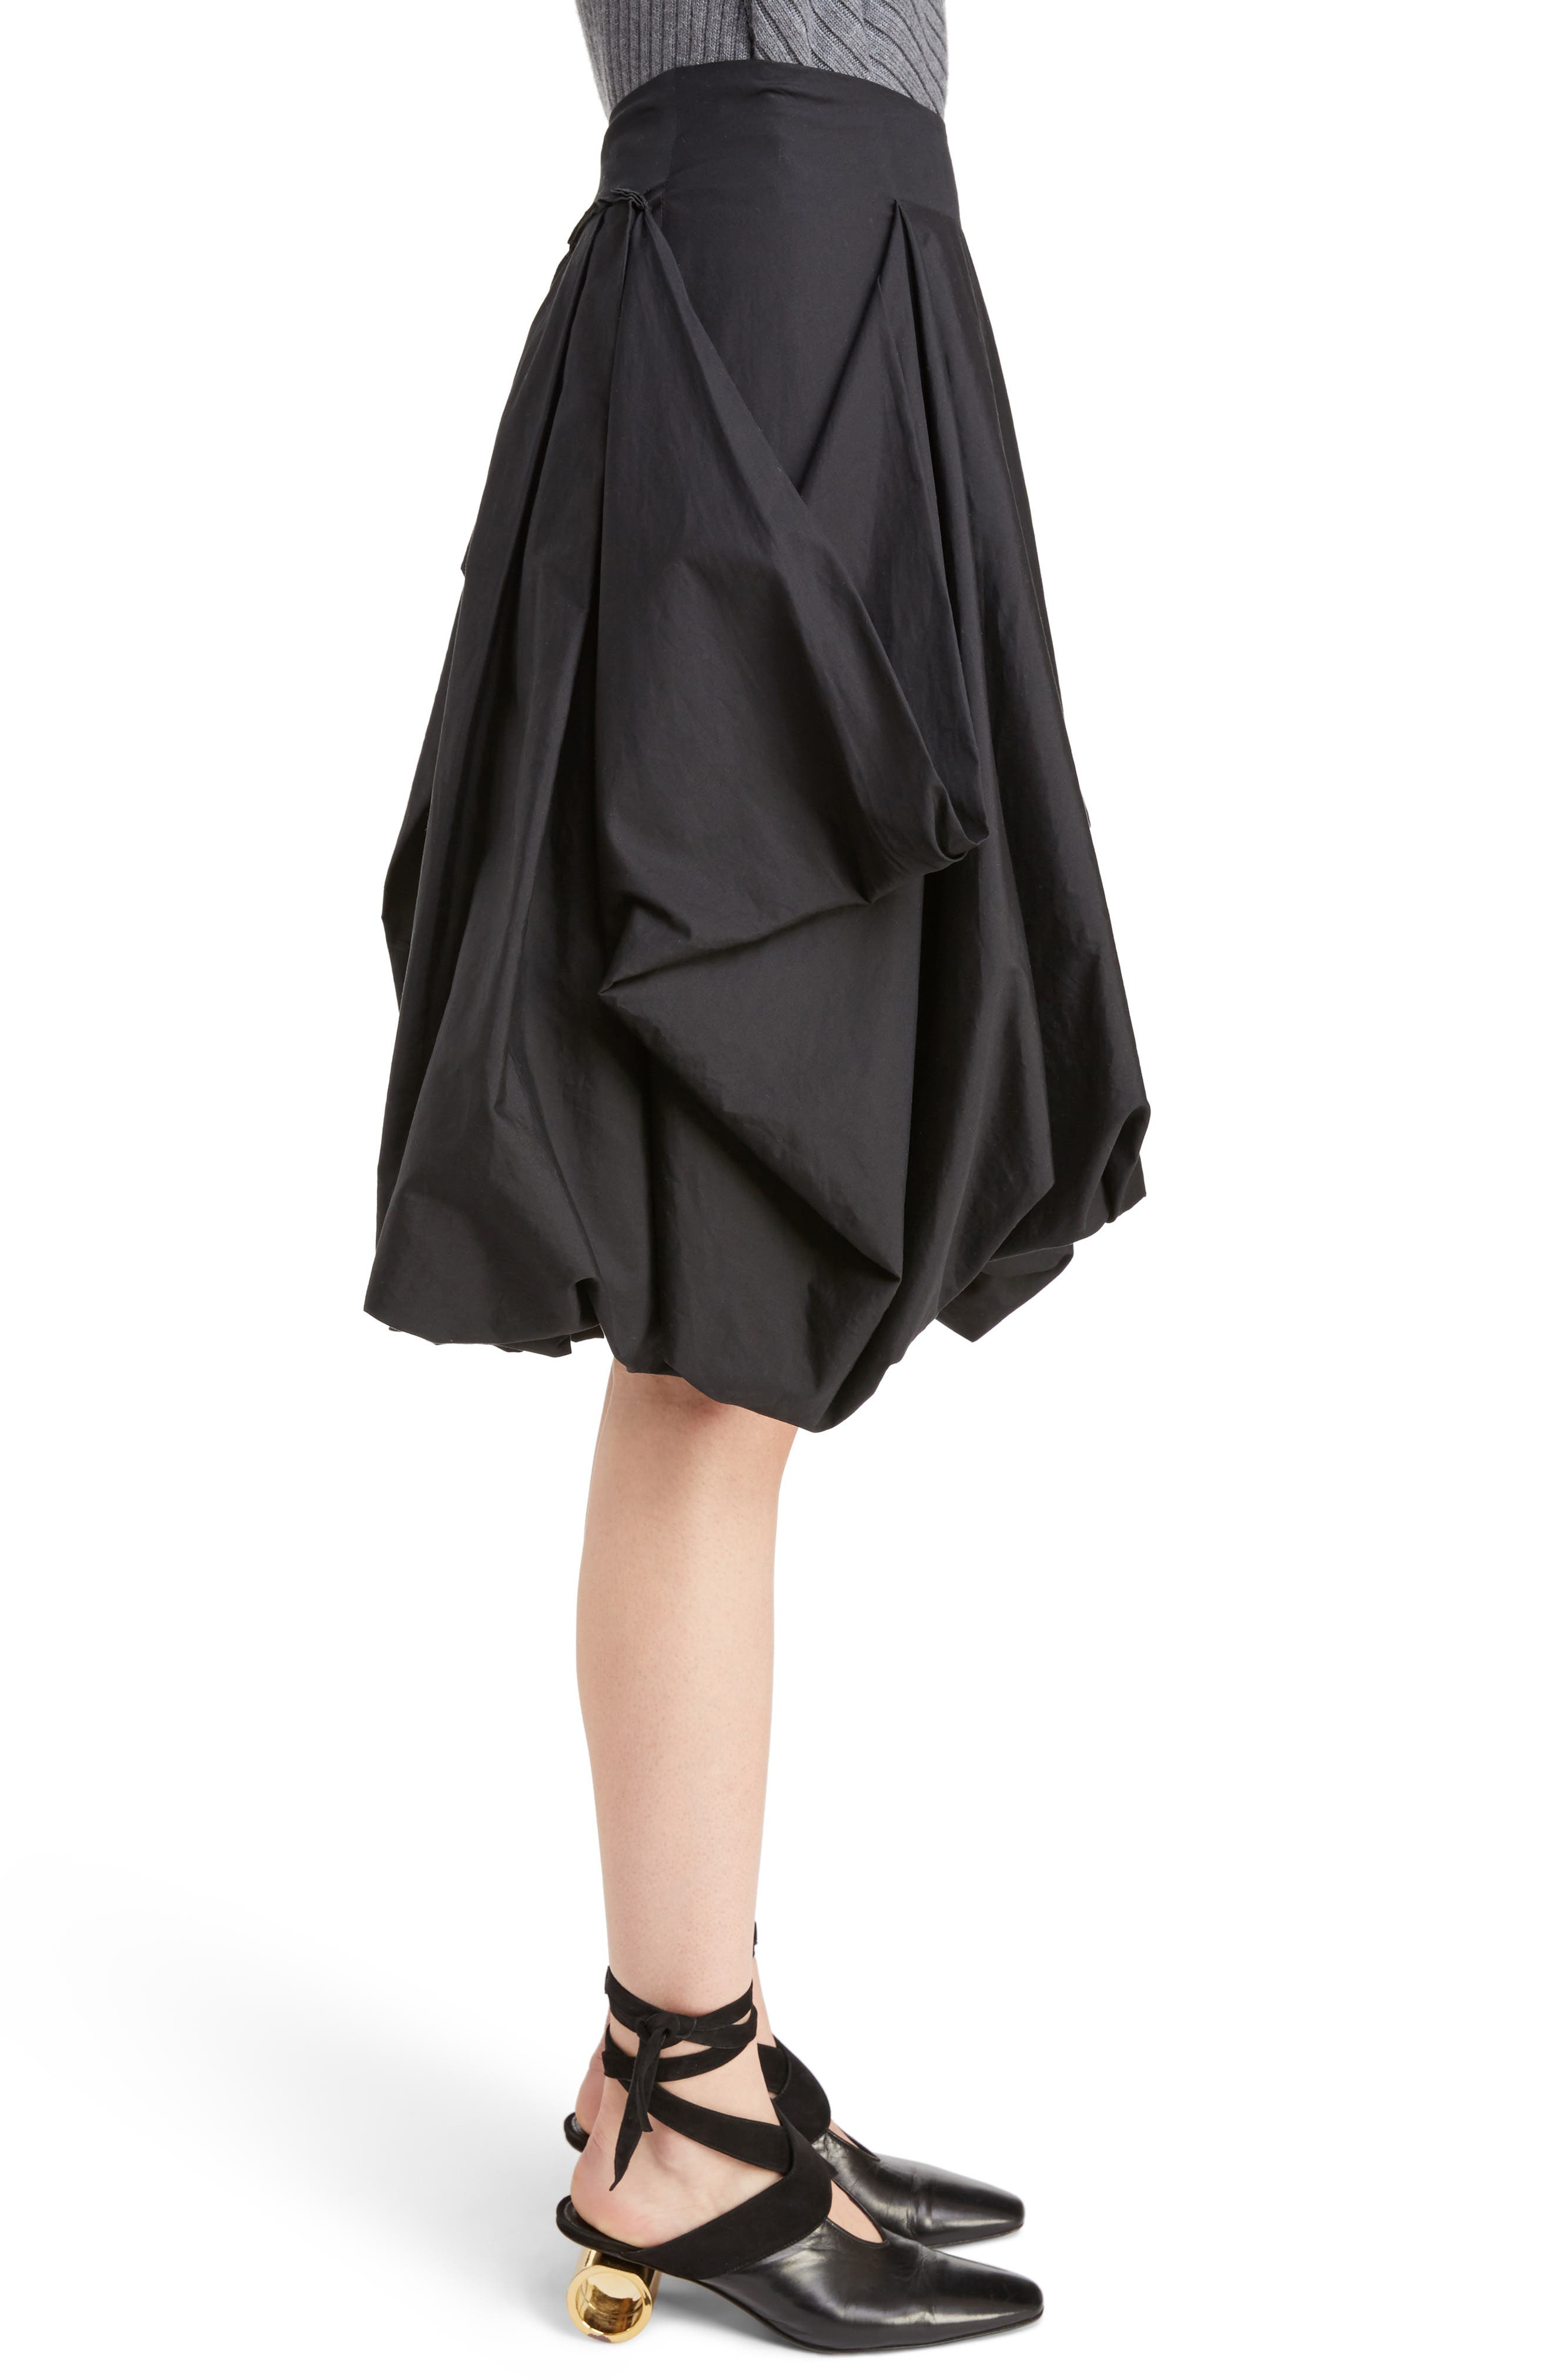 J.W.ANDERSON Drape Pockets Pleated Skirt,                             Alternate thumbnail 3, color,                             001